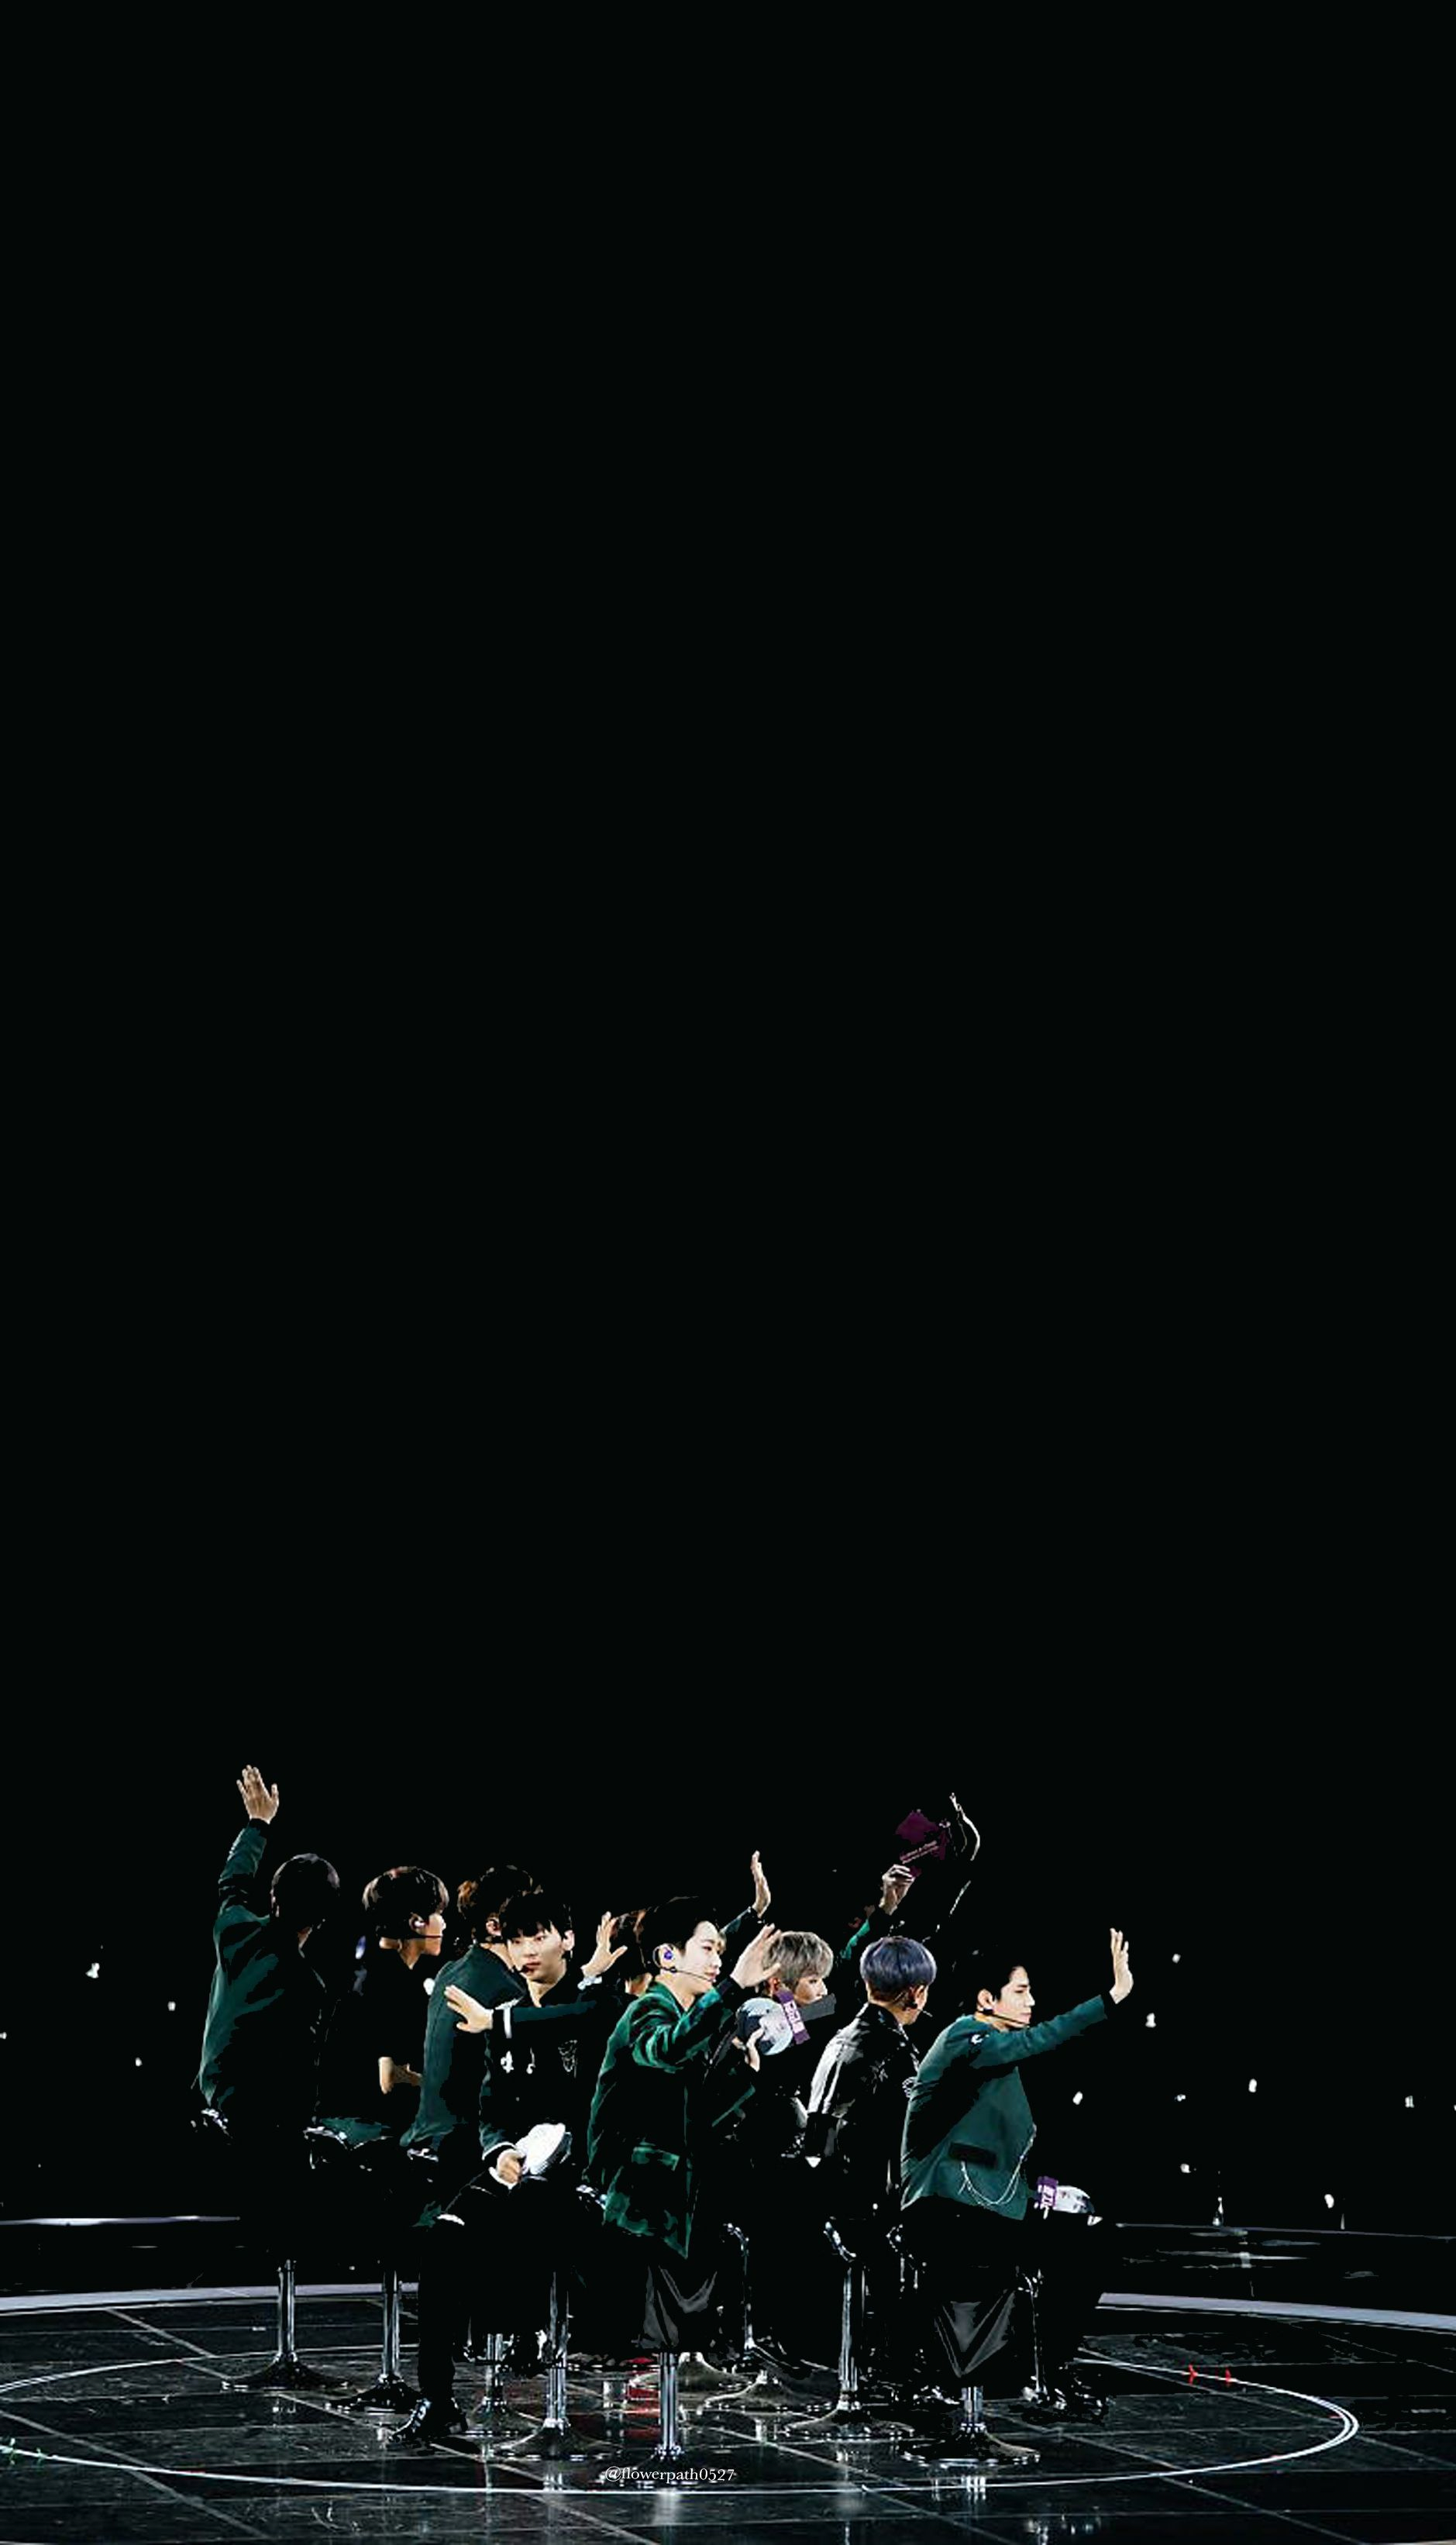 Wanna One 1 1 0 Nothing Without You Premier Fancon Wallpaper